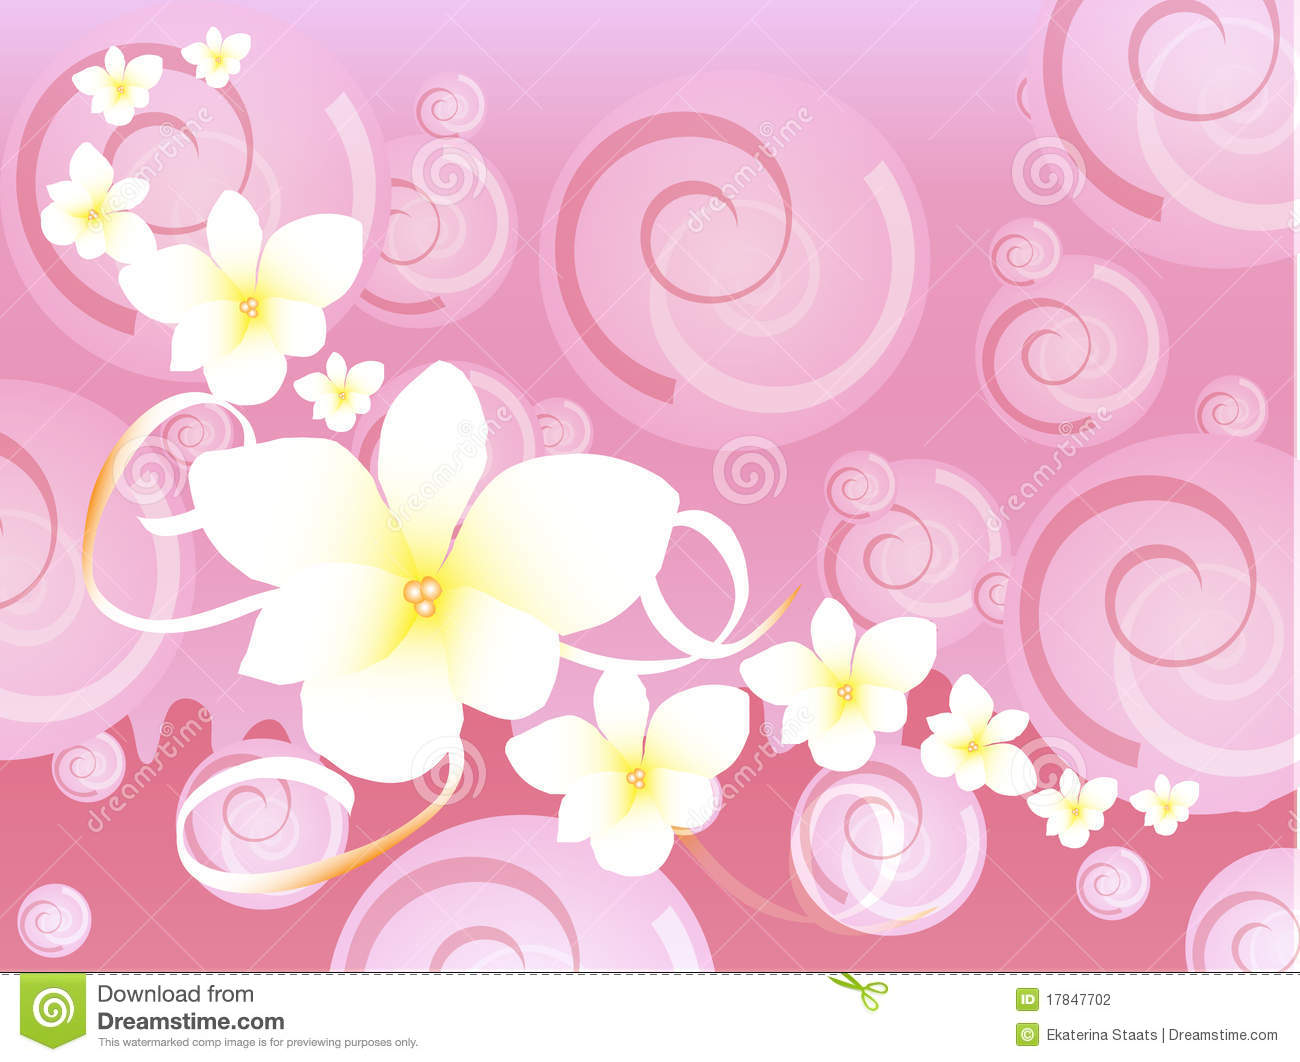 Pink hawaiian fancy background with spirals and exotic white flowers